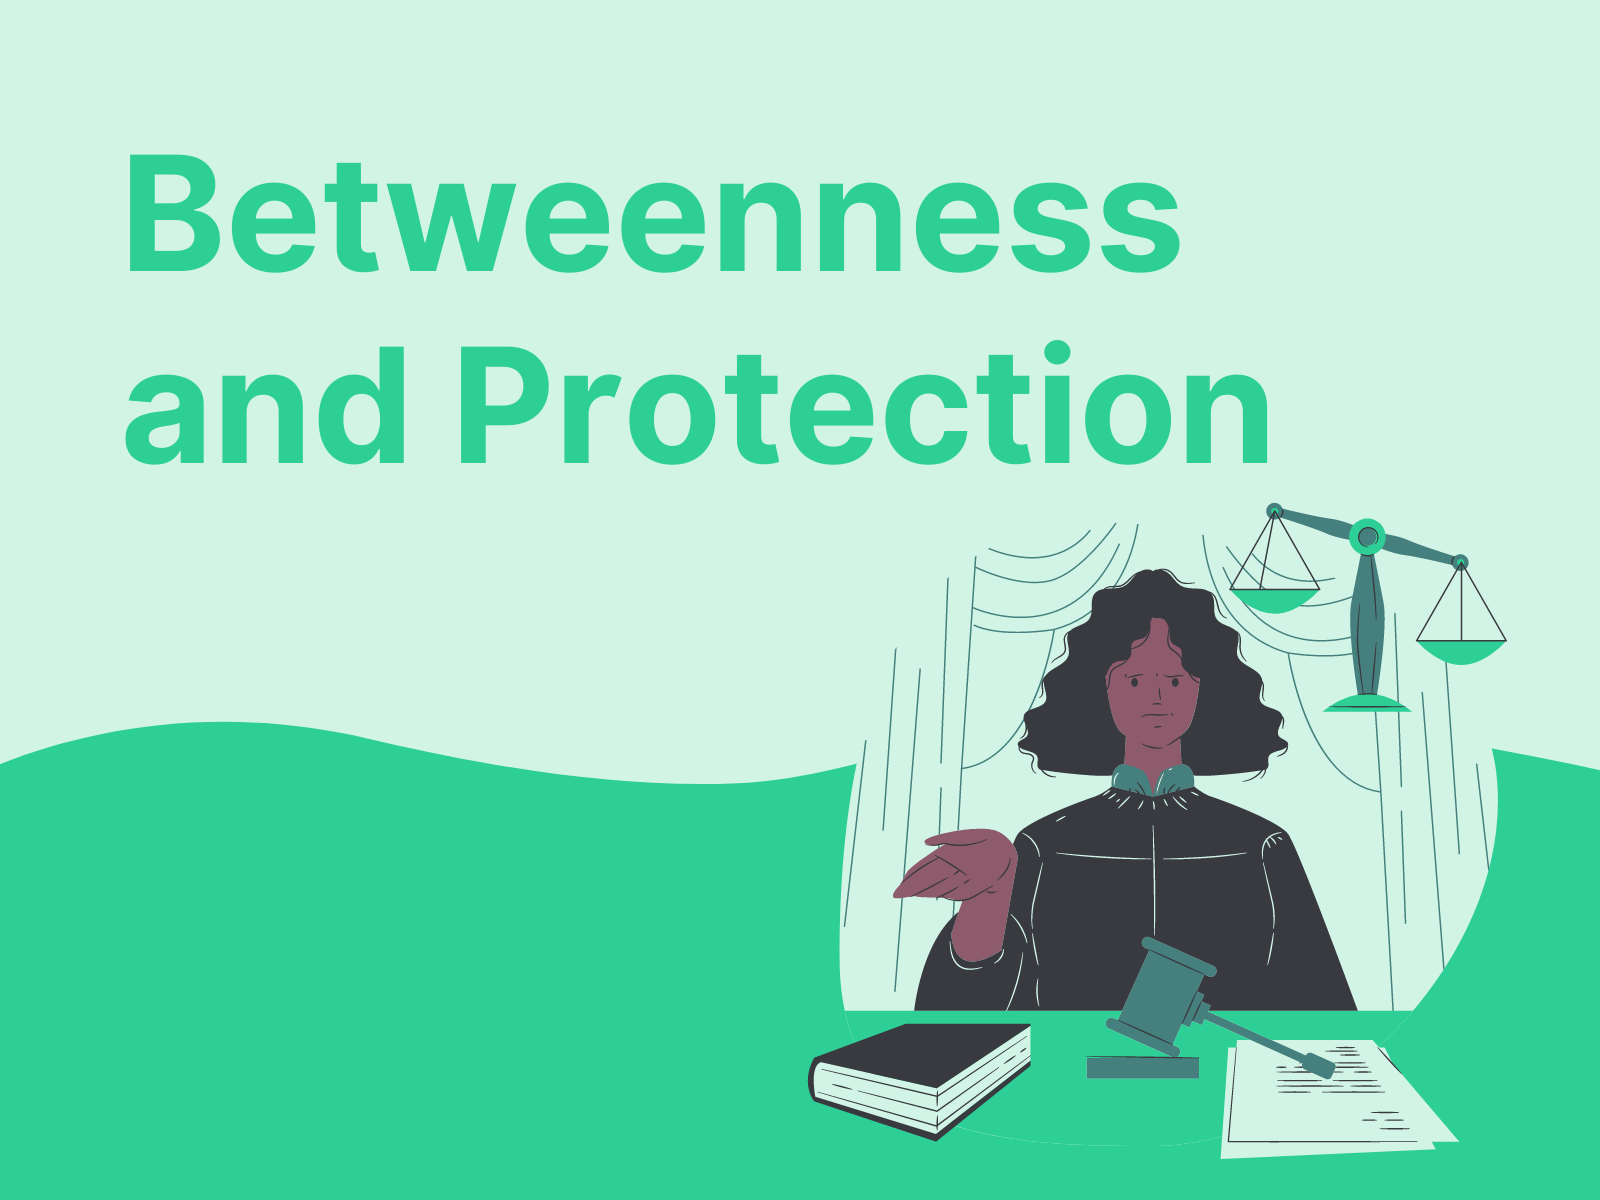 Betweenness and Protection